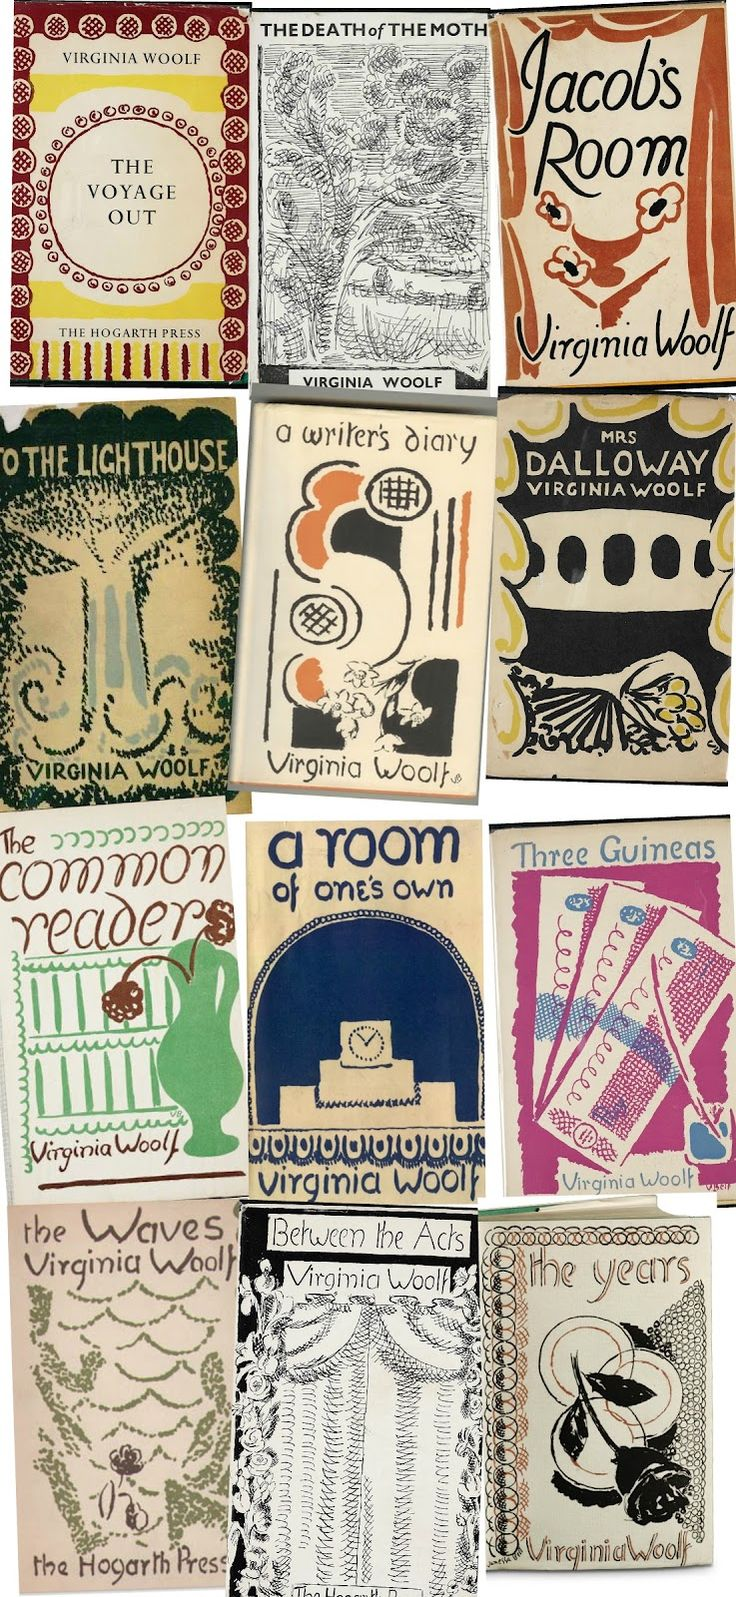 17 best images about virginia woolf virginia woolf the hogarth press books and covers by sisters virginia woolf and vanessa bell